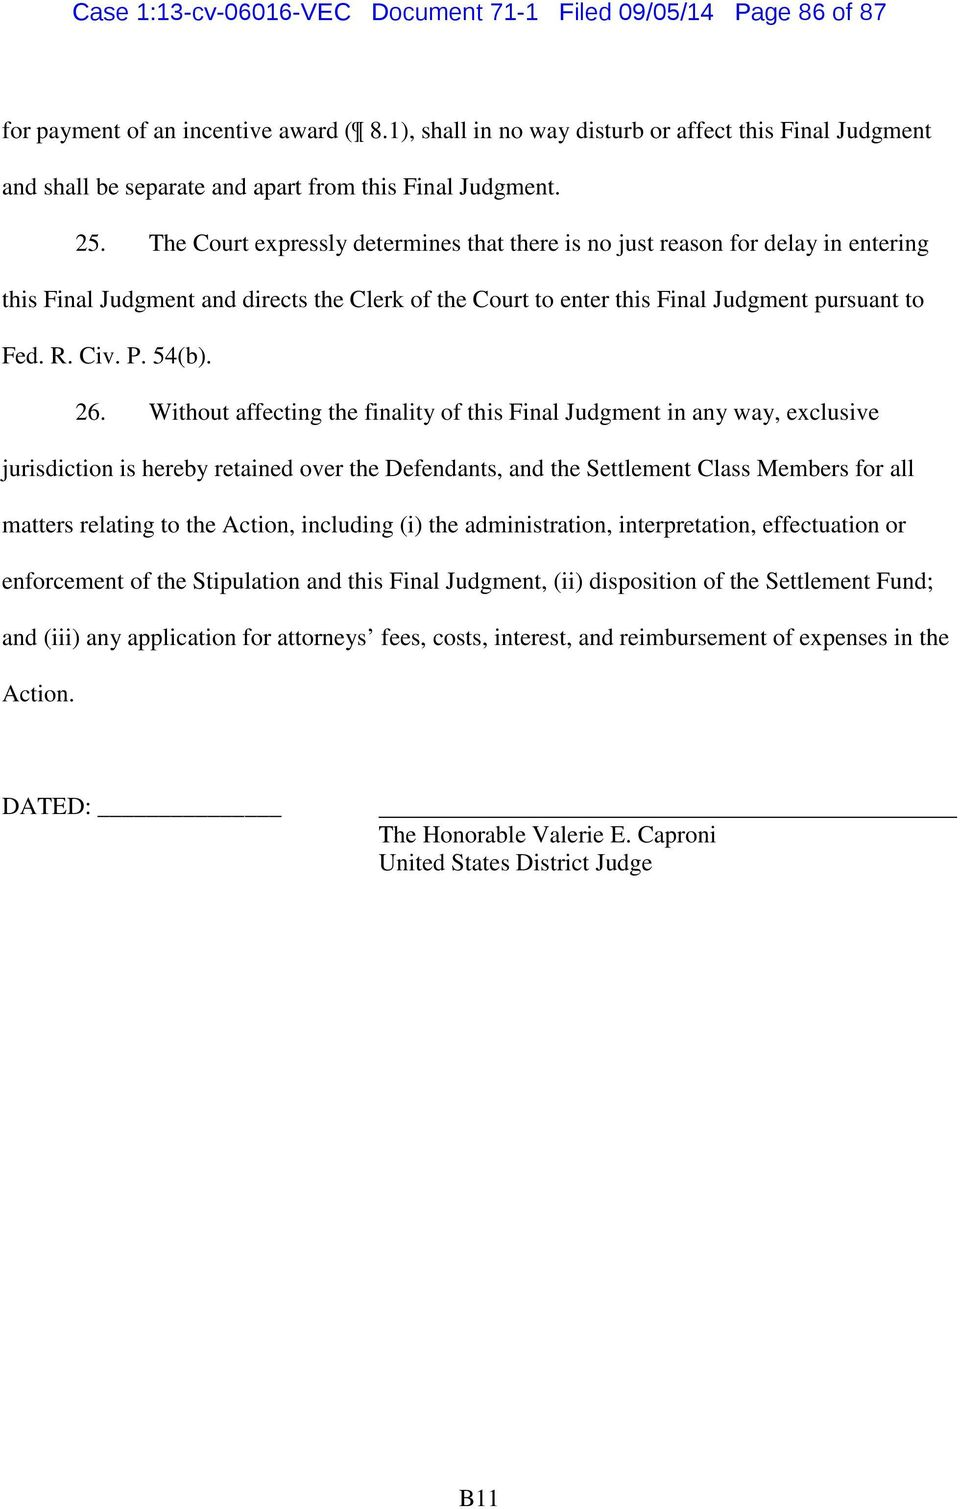 The Court expressly determines that there is no just reason for delay in entering this Final Judgment and directs the Clerk of the Court to enter this Final Judgment pursuant to Fed. R. Civ. P. 54(b).